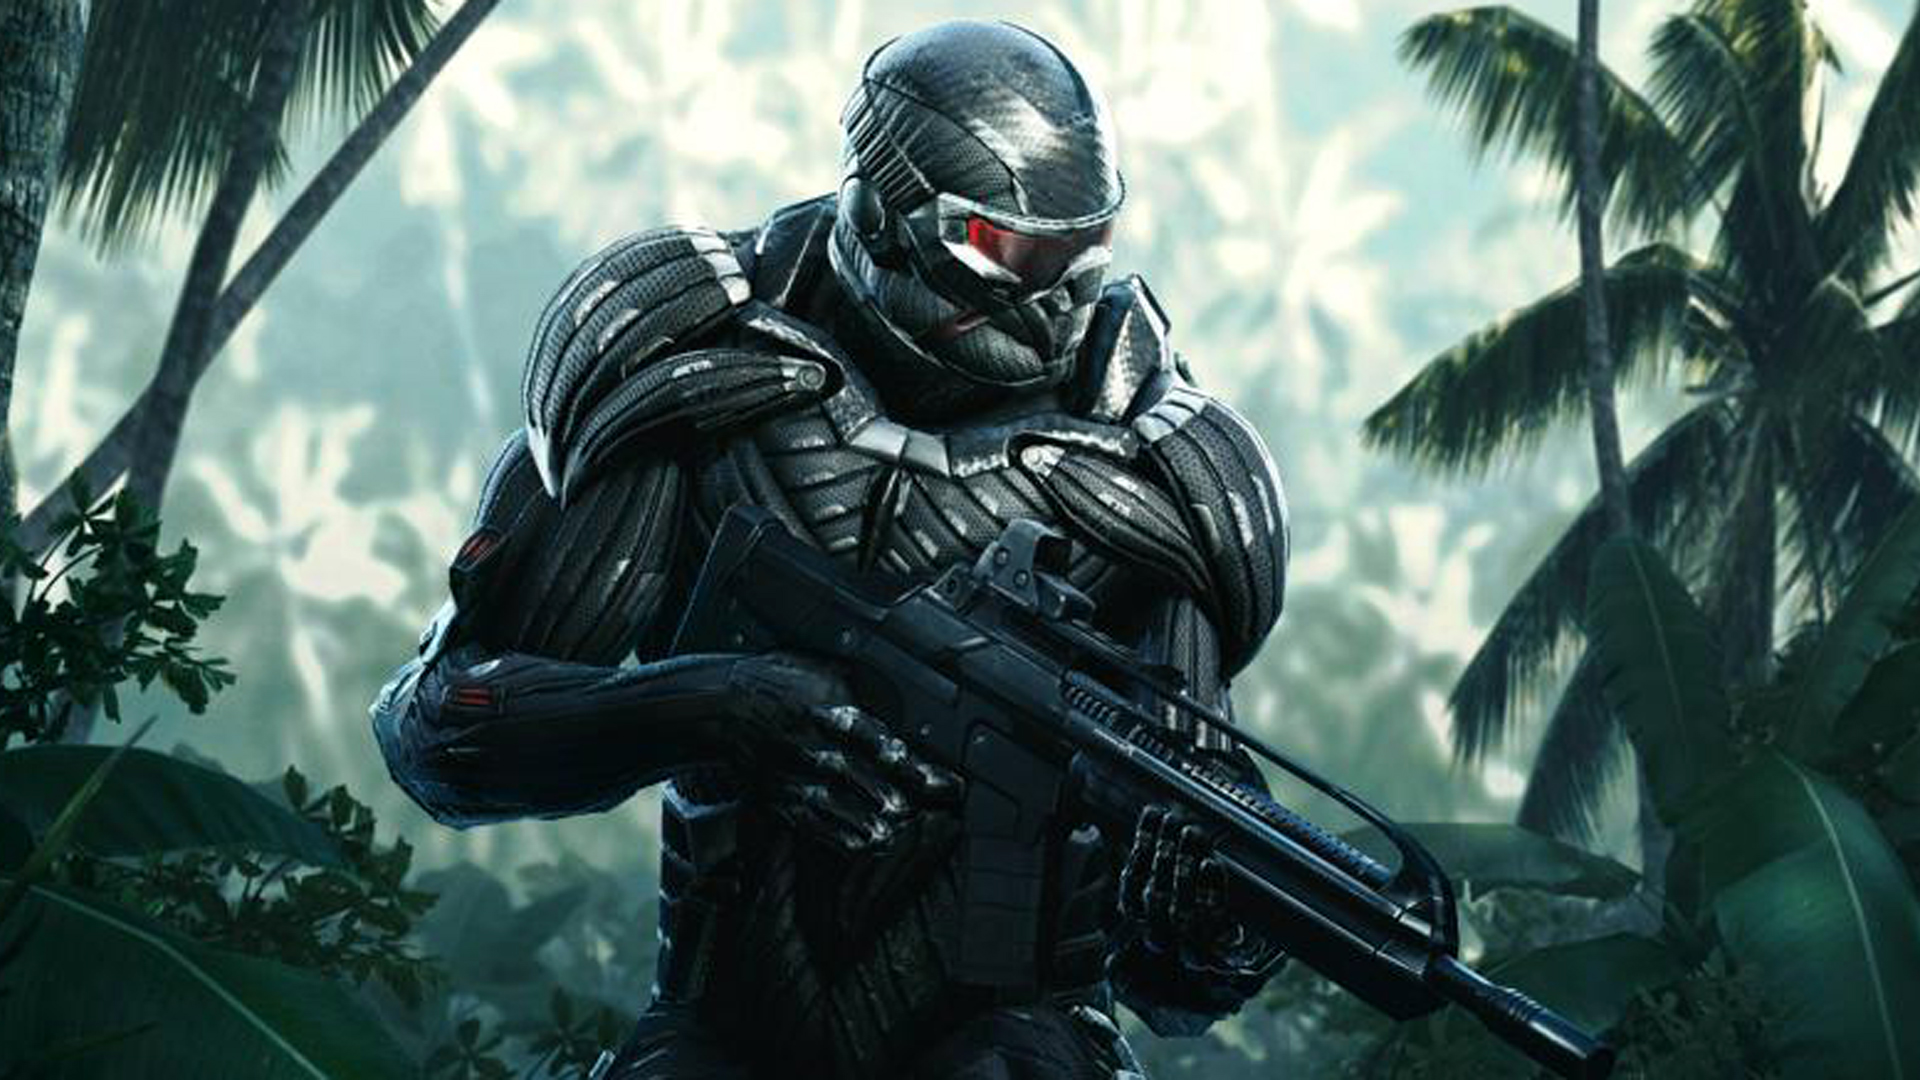 Crysis Remastered arrives on Steam to 'Mixed' reviews